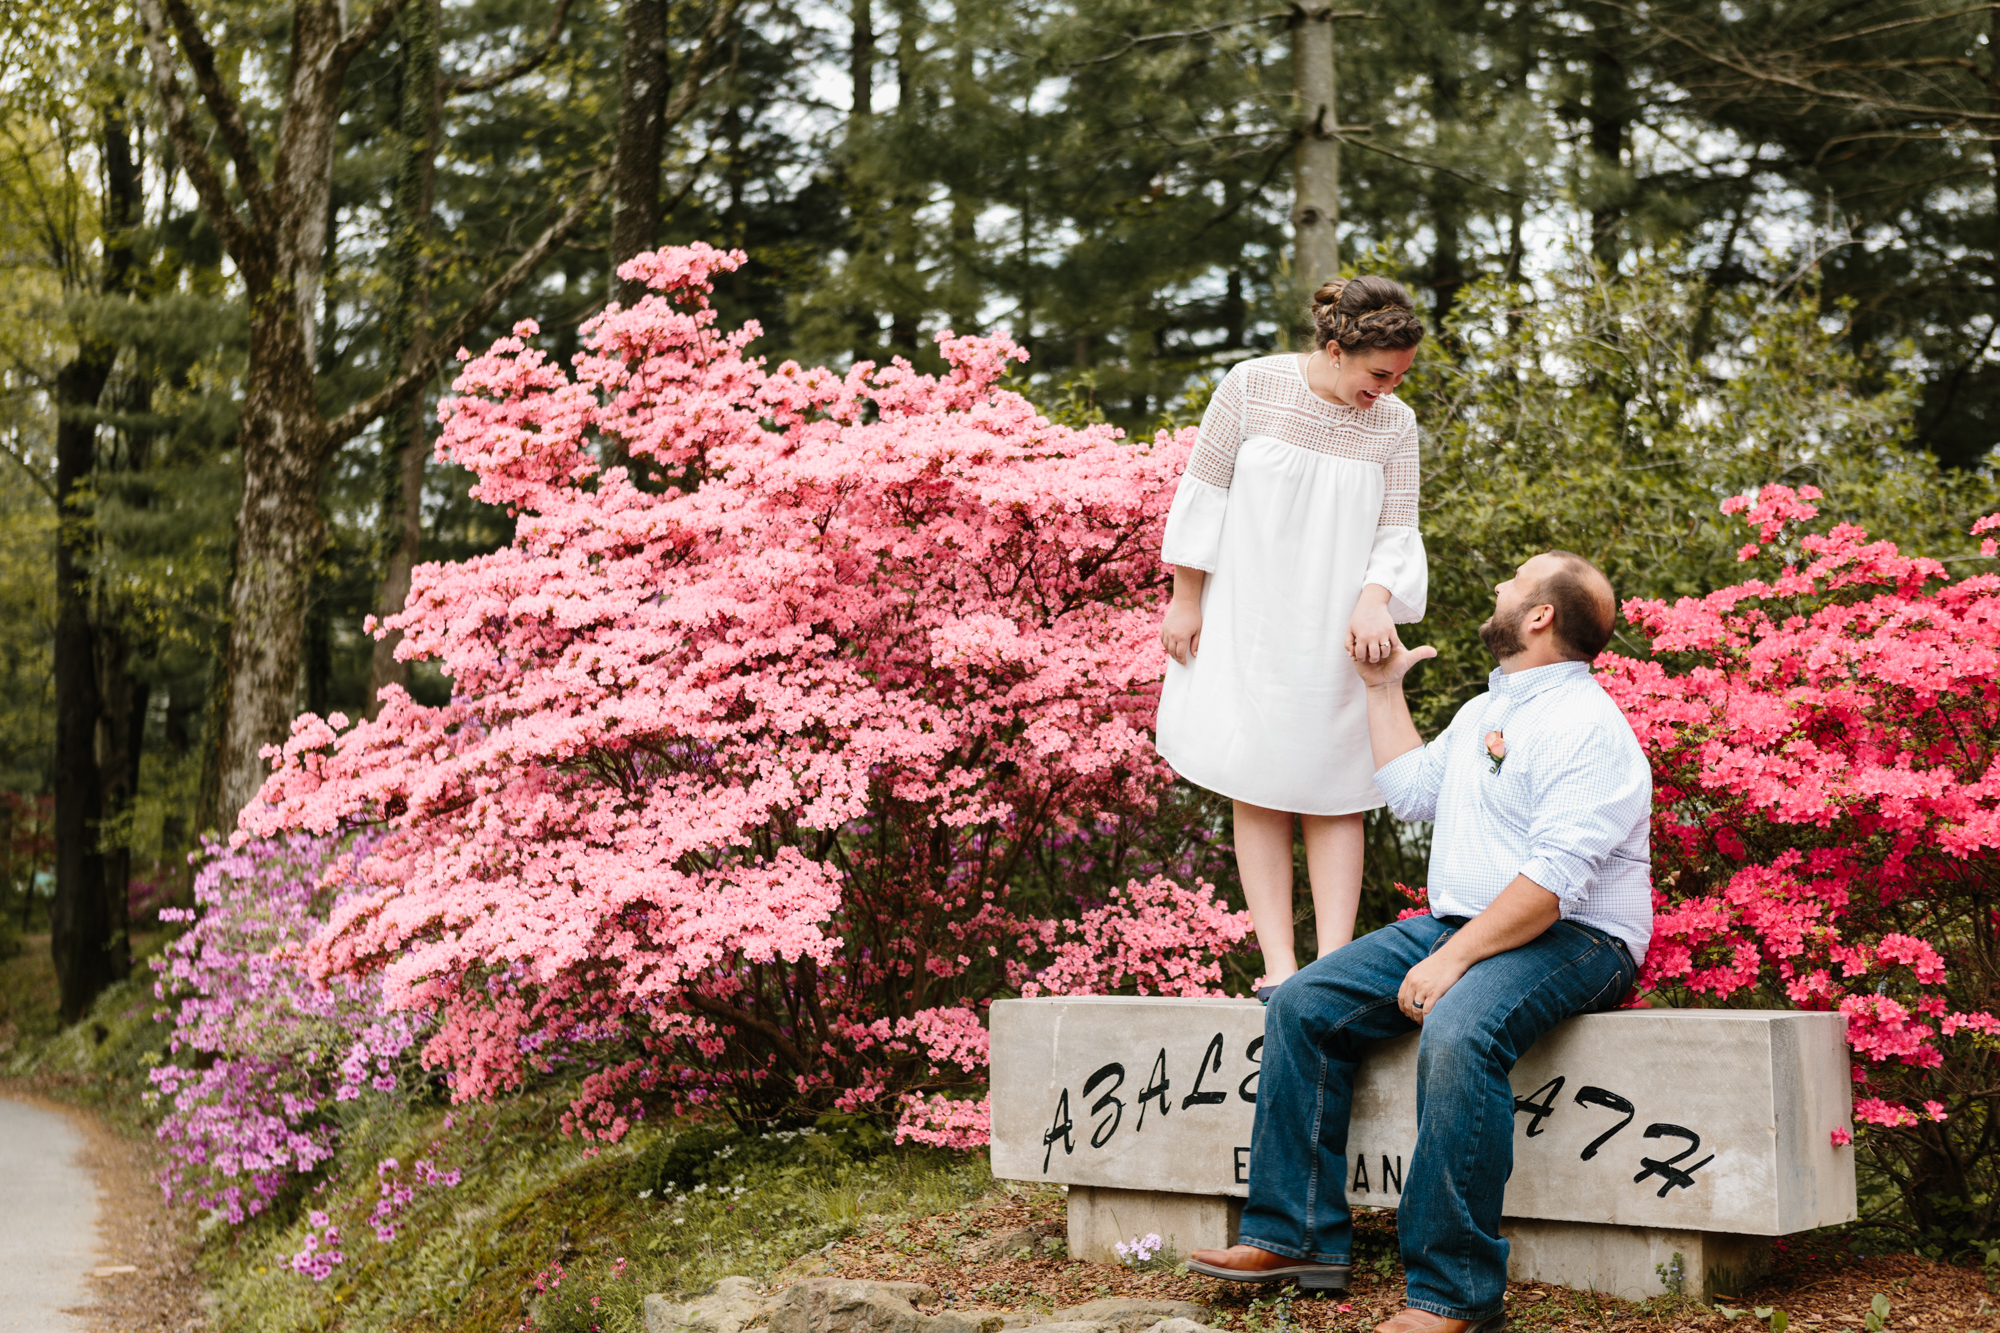 Natalie and Kyle's wedding photography from their elopement in Bloomington, Indiana.